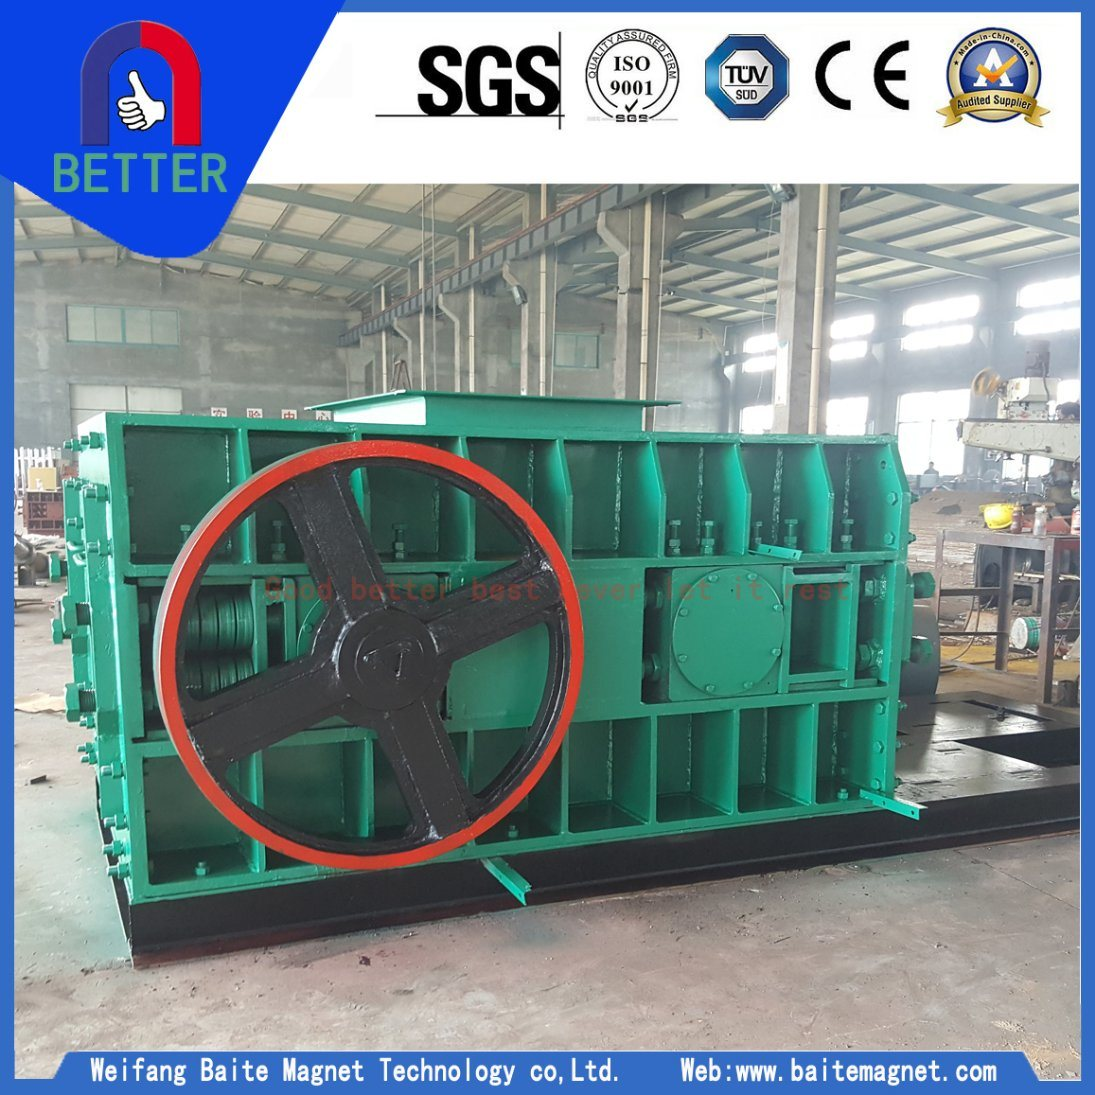 2pg Mining Crusher/Roller Crusher/Double Roll Crushing Machine for Coal/Coke/Refactory Material Crushing